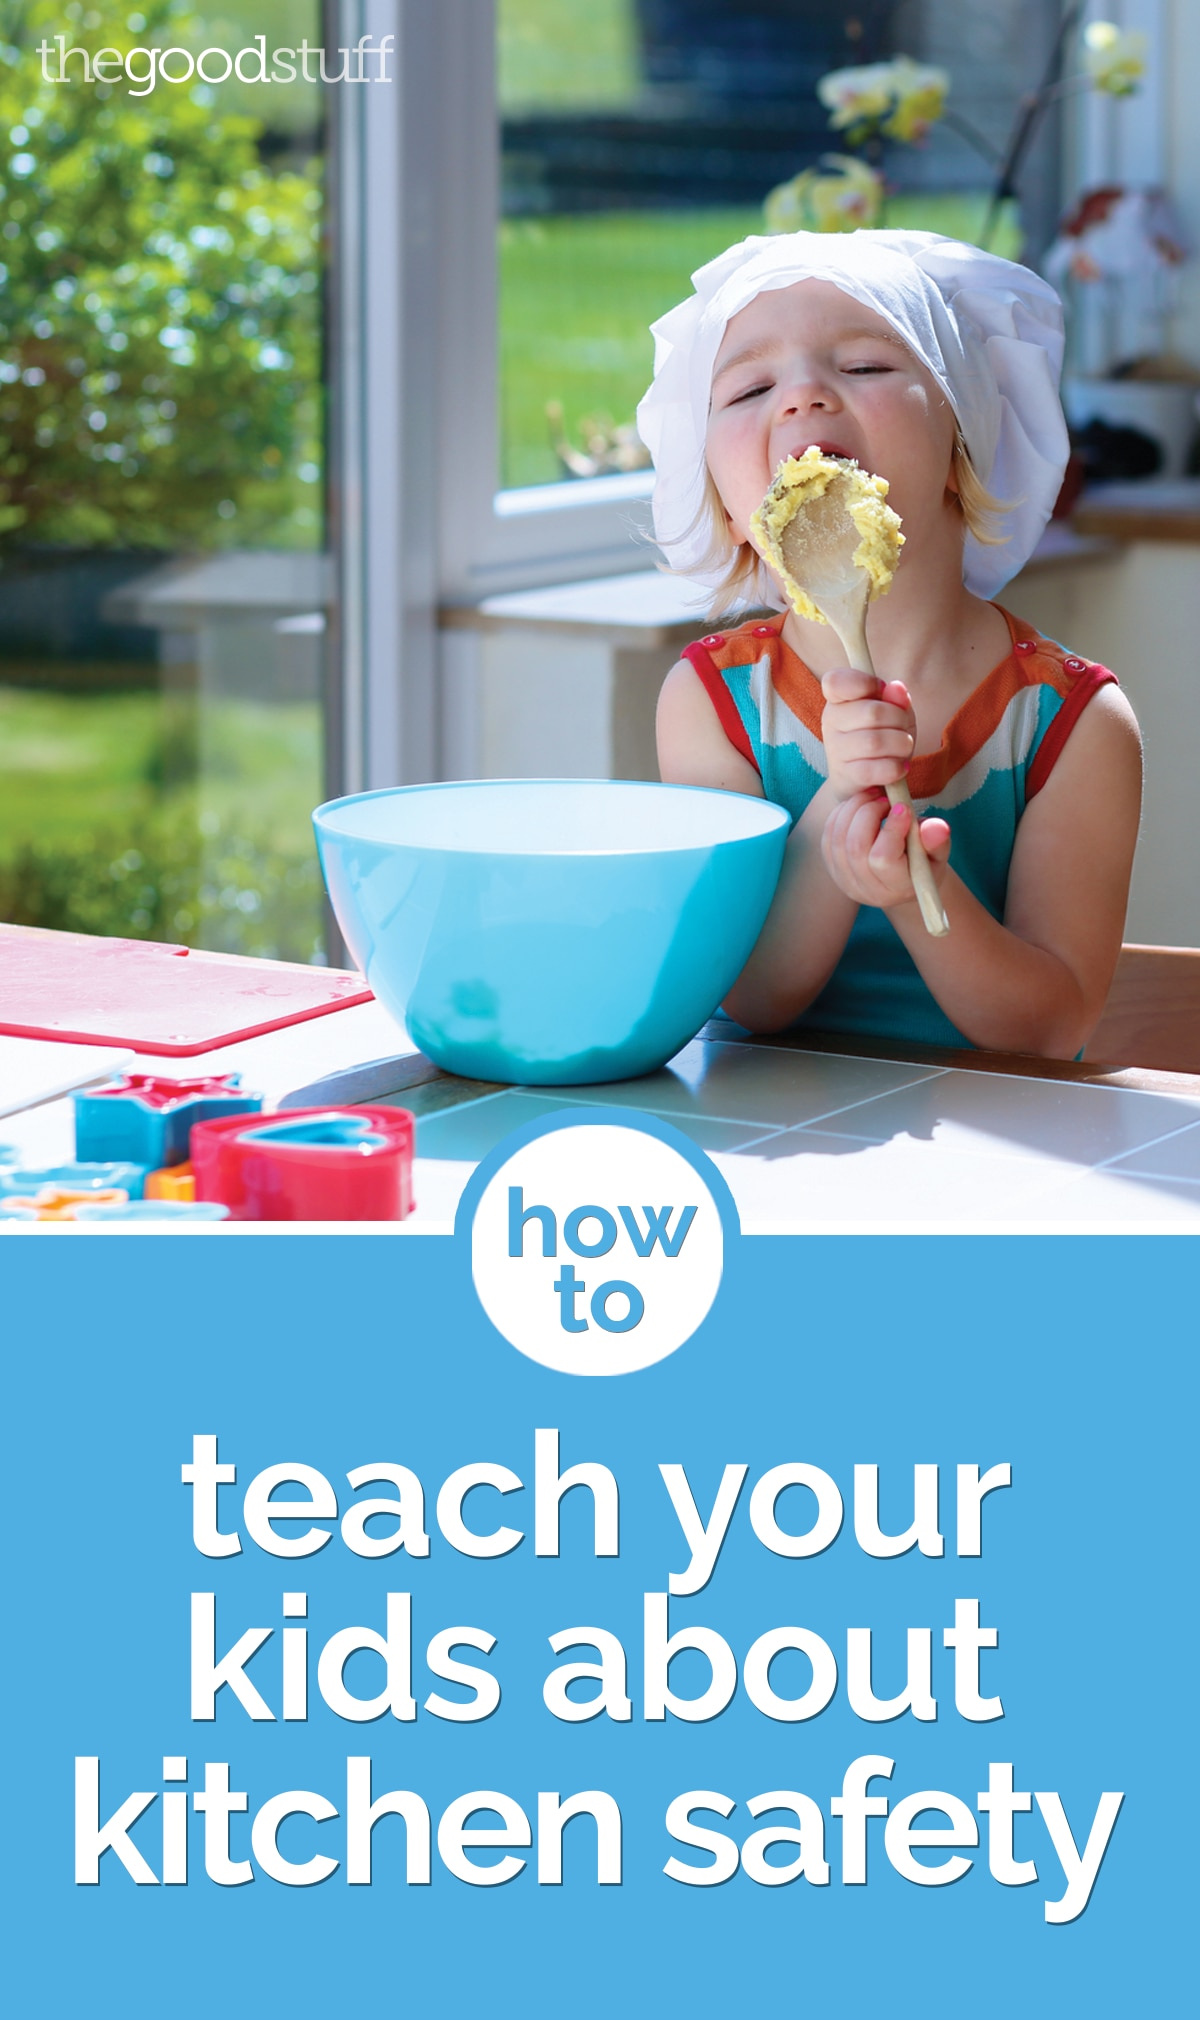 How to Teach Your Kids About Kitchen Safety | thegoodstuff